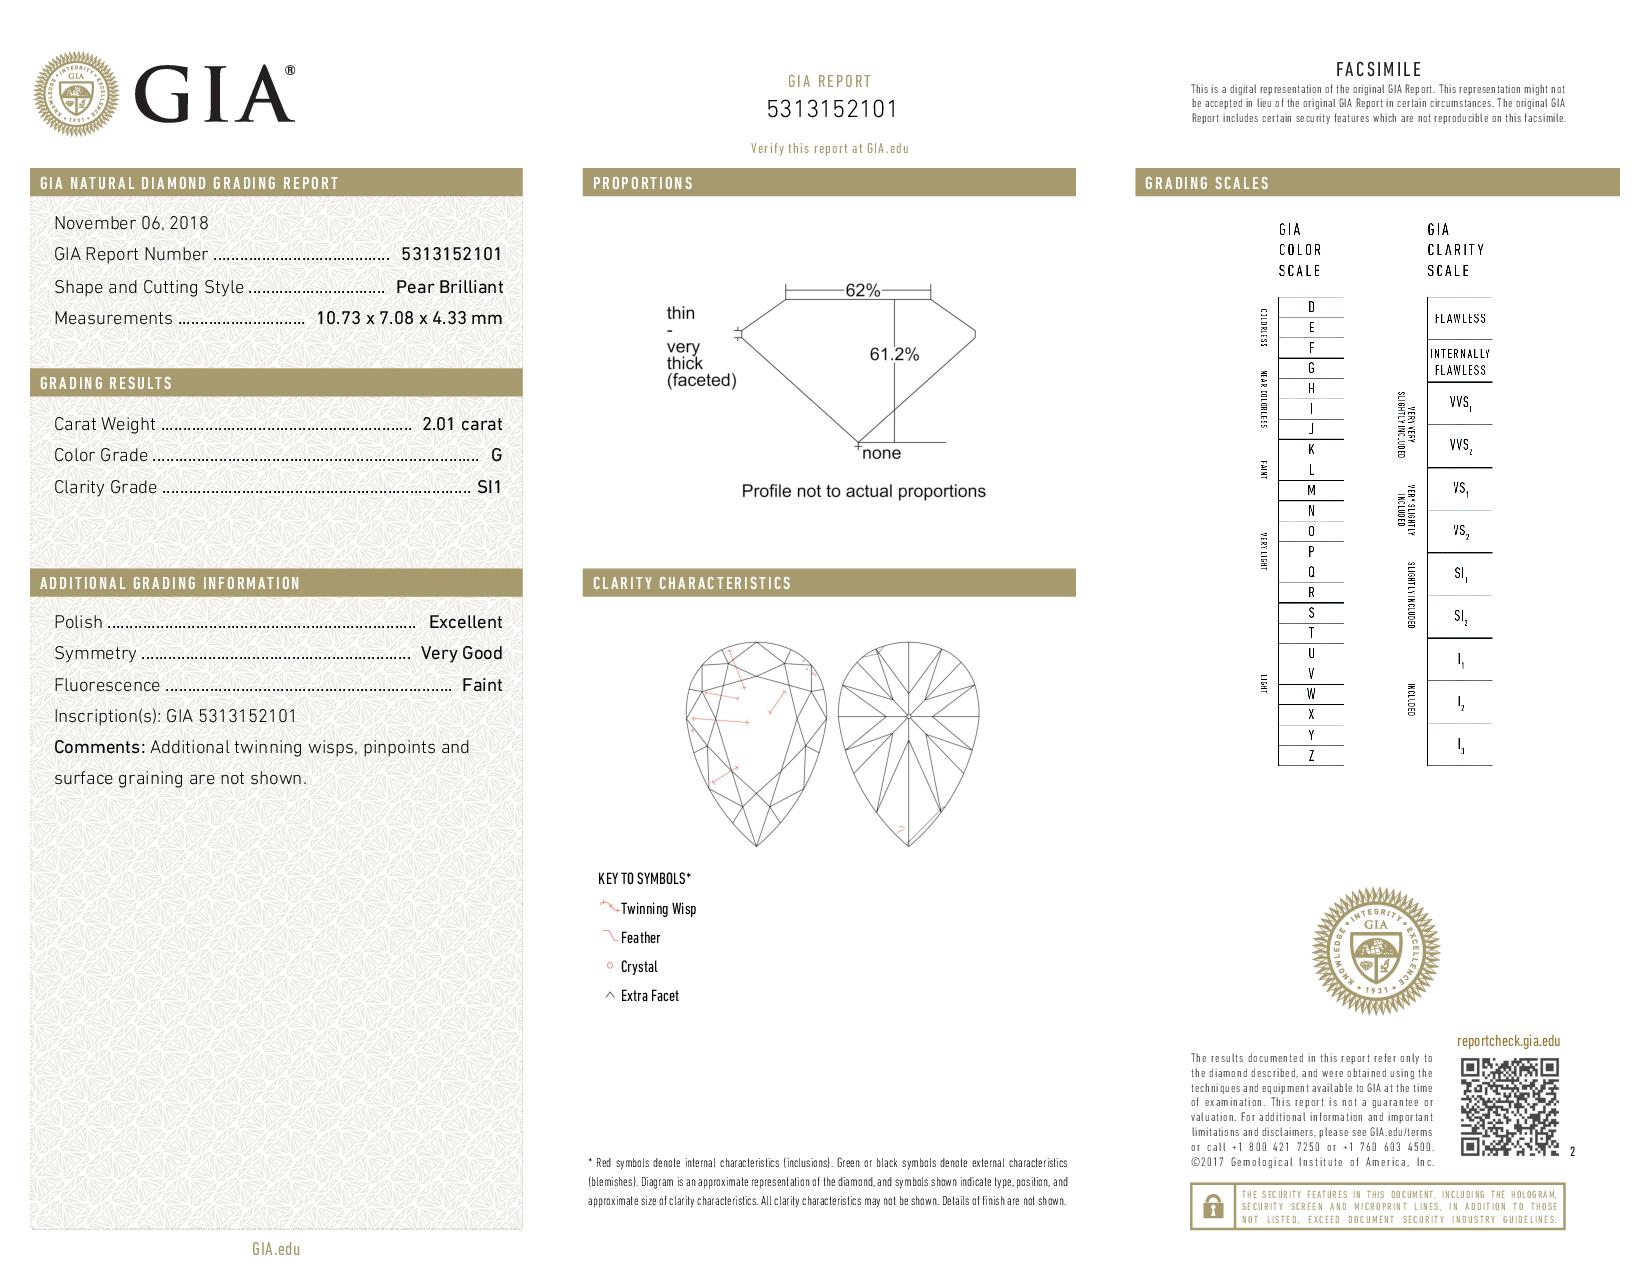 This is a 2.01 carat pear shape, G color, SI1 clarity natural diamond accompanied by a GIA grading report.